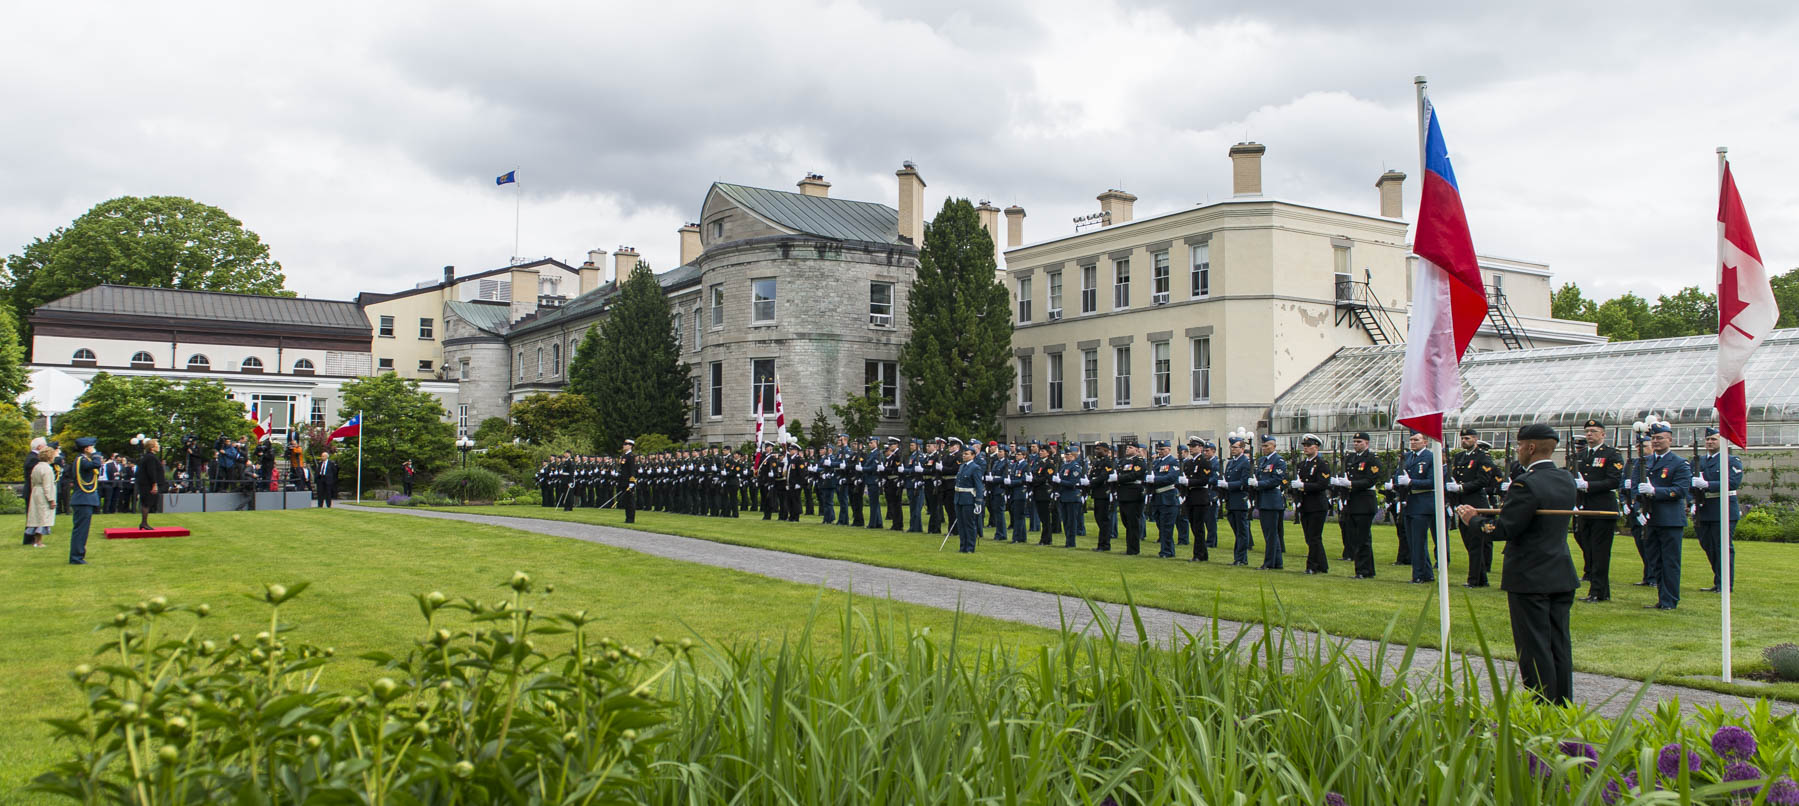 The official residence was a beautiful backdrop for this protocol ceremony.